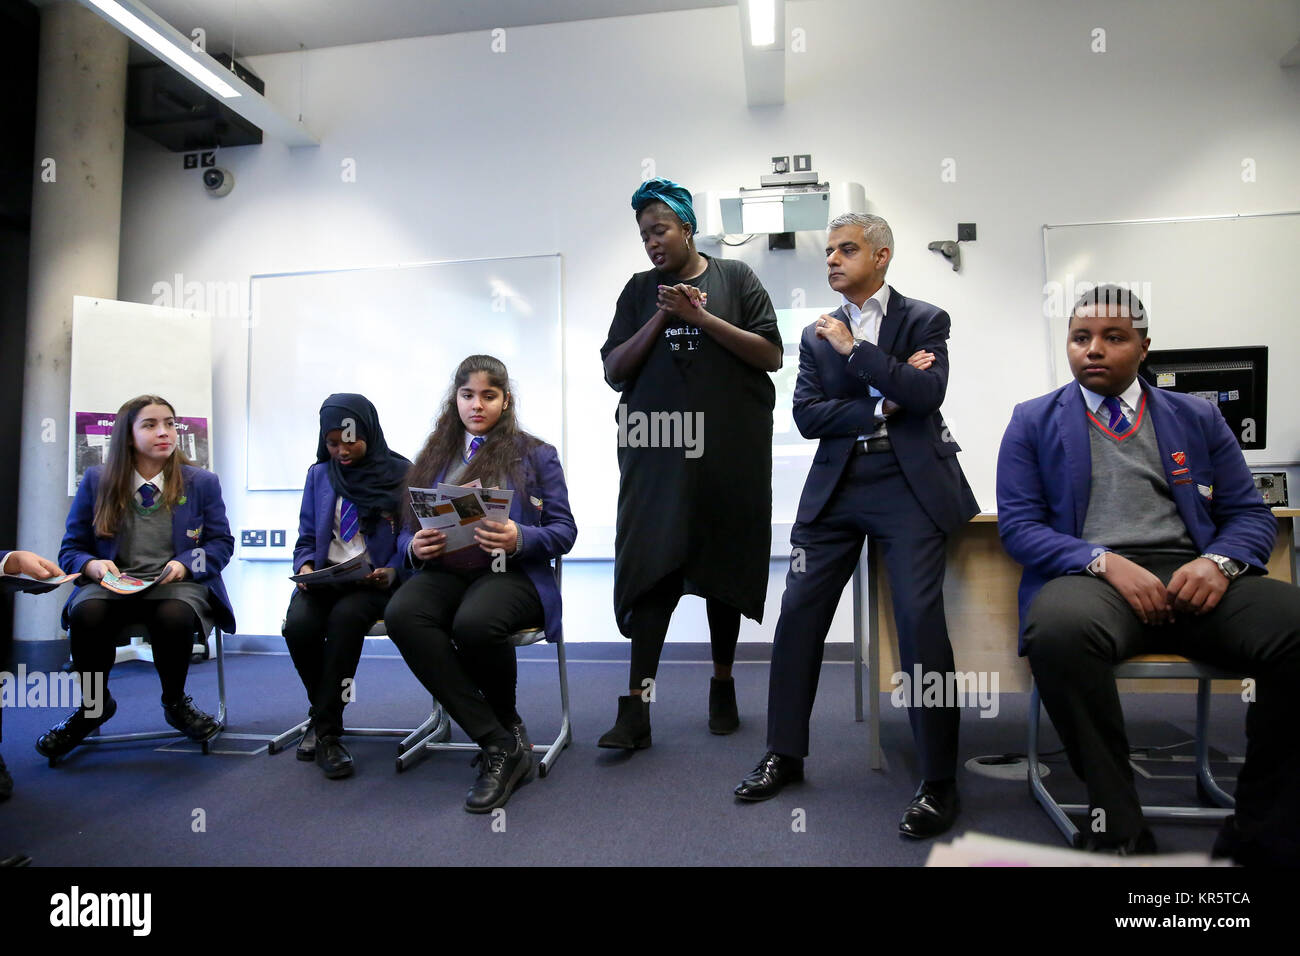 Platanos College, South London. London. UK 18 Dec 2017 - Ahead of the centenary of the first women in the UK securing - Stock Image